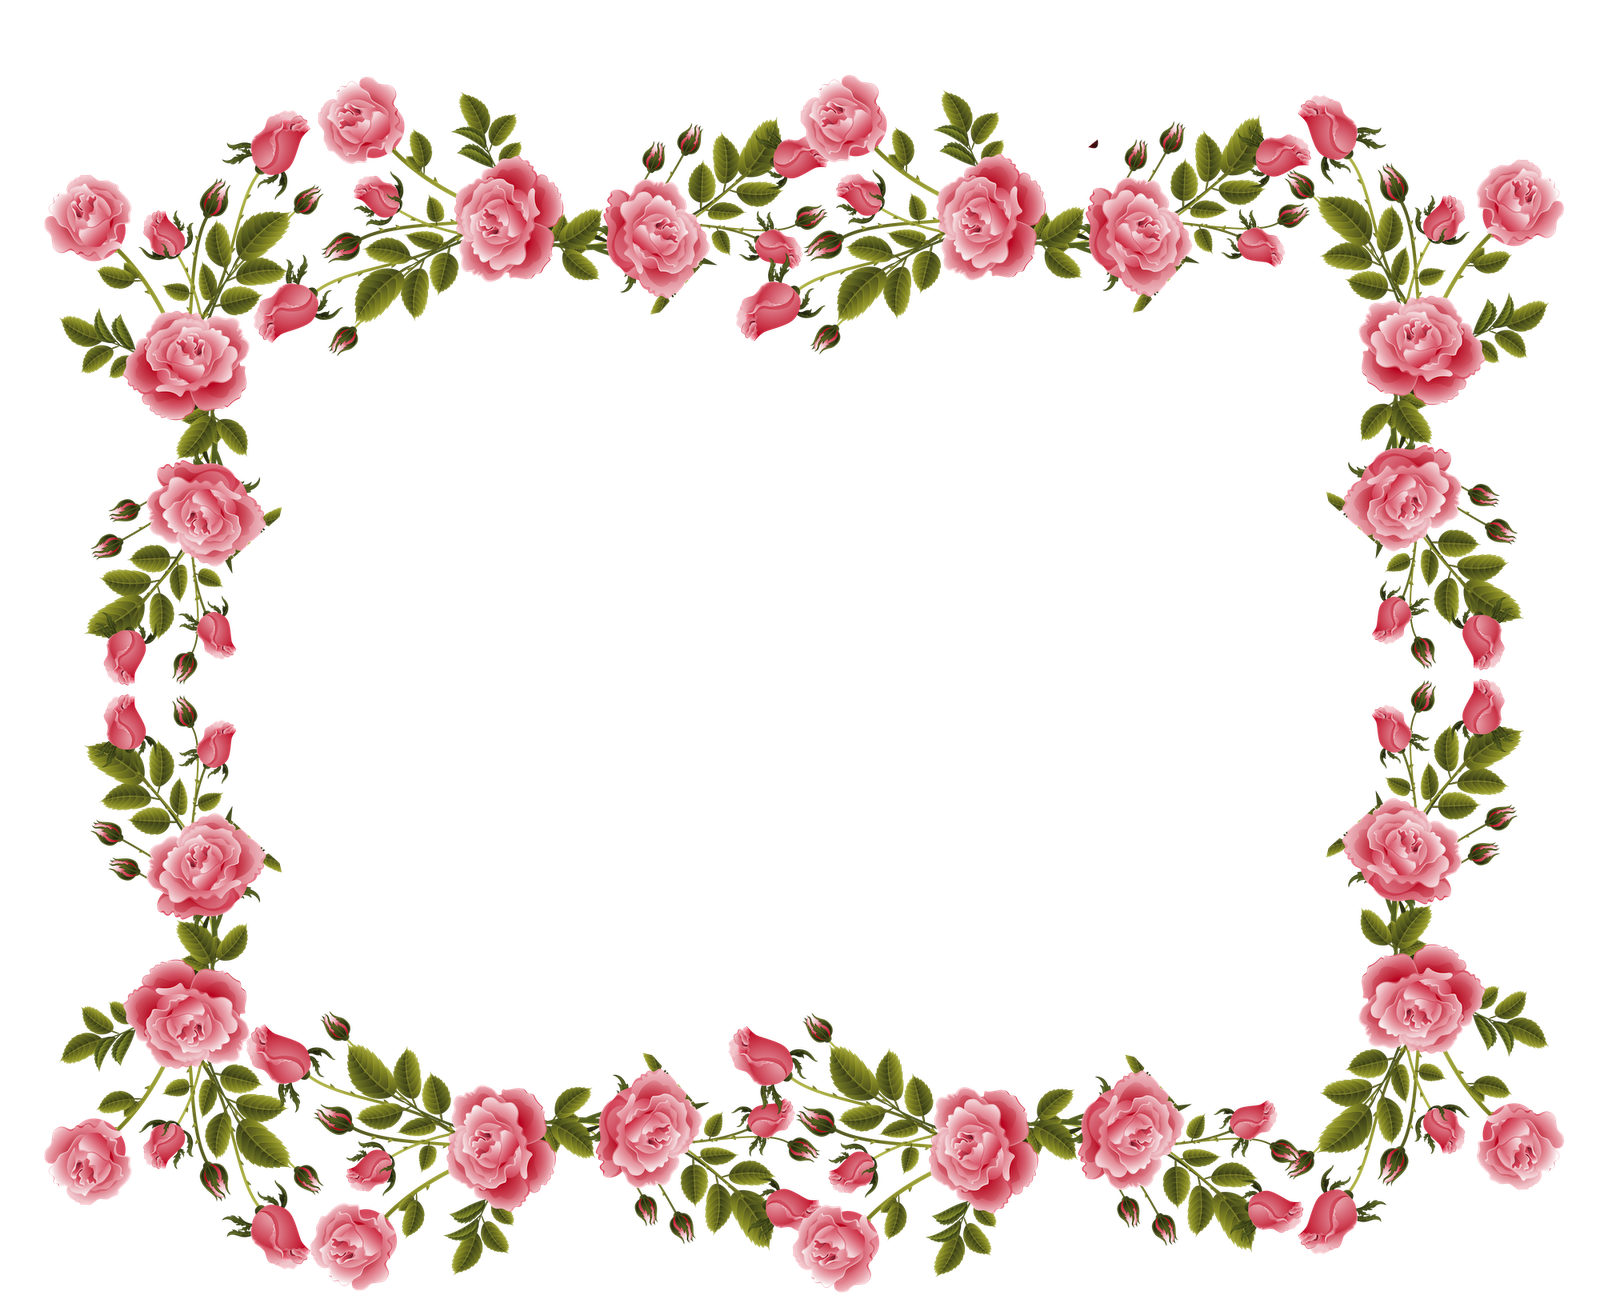 Pink Rose Wallpaper Border 18 Background ...